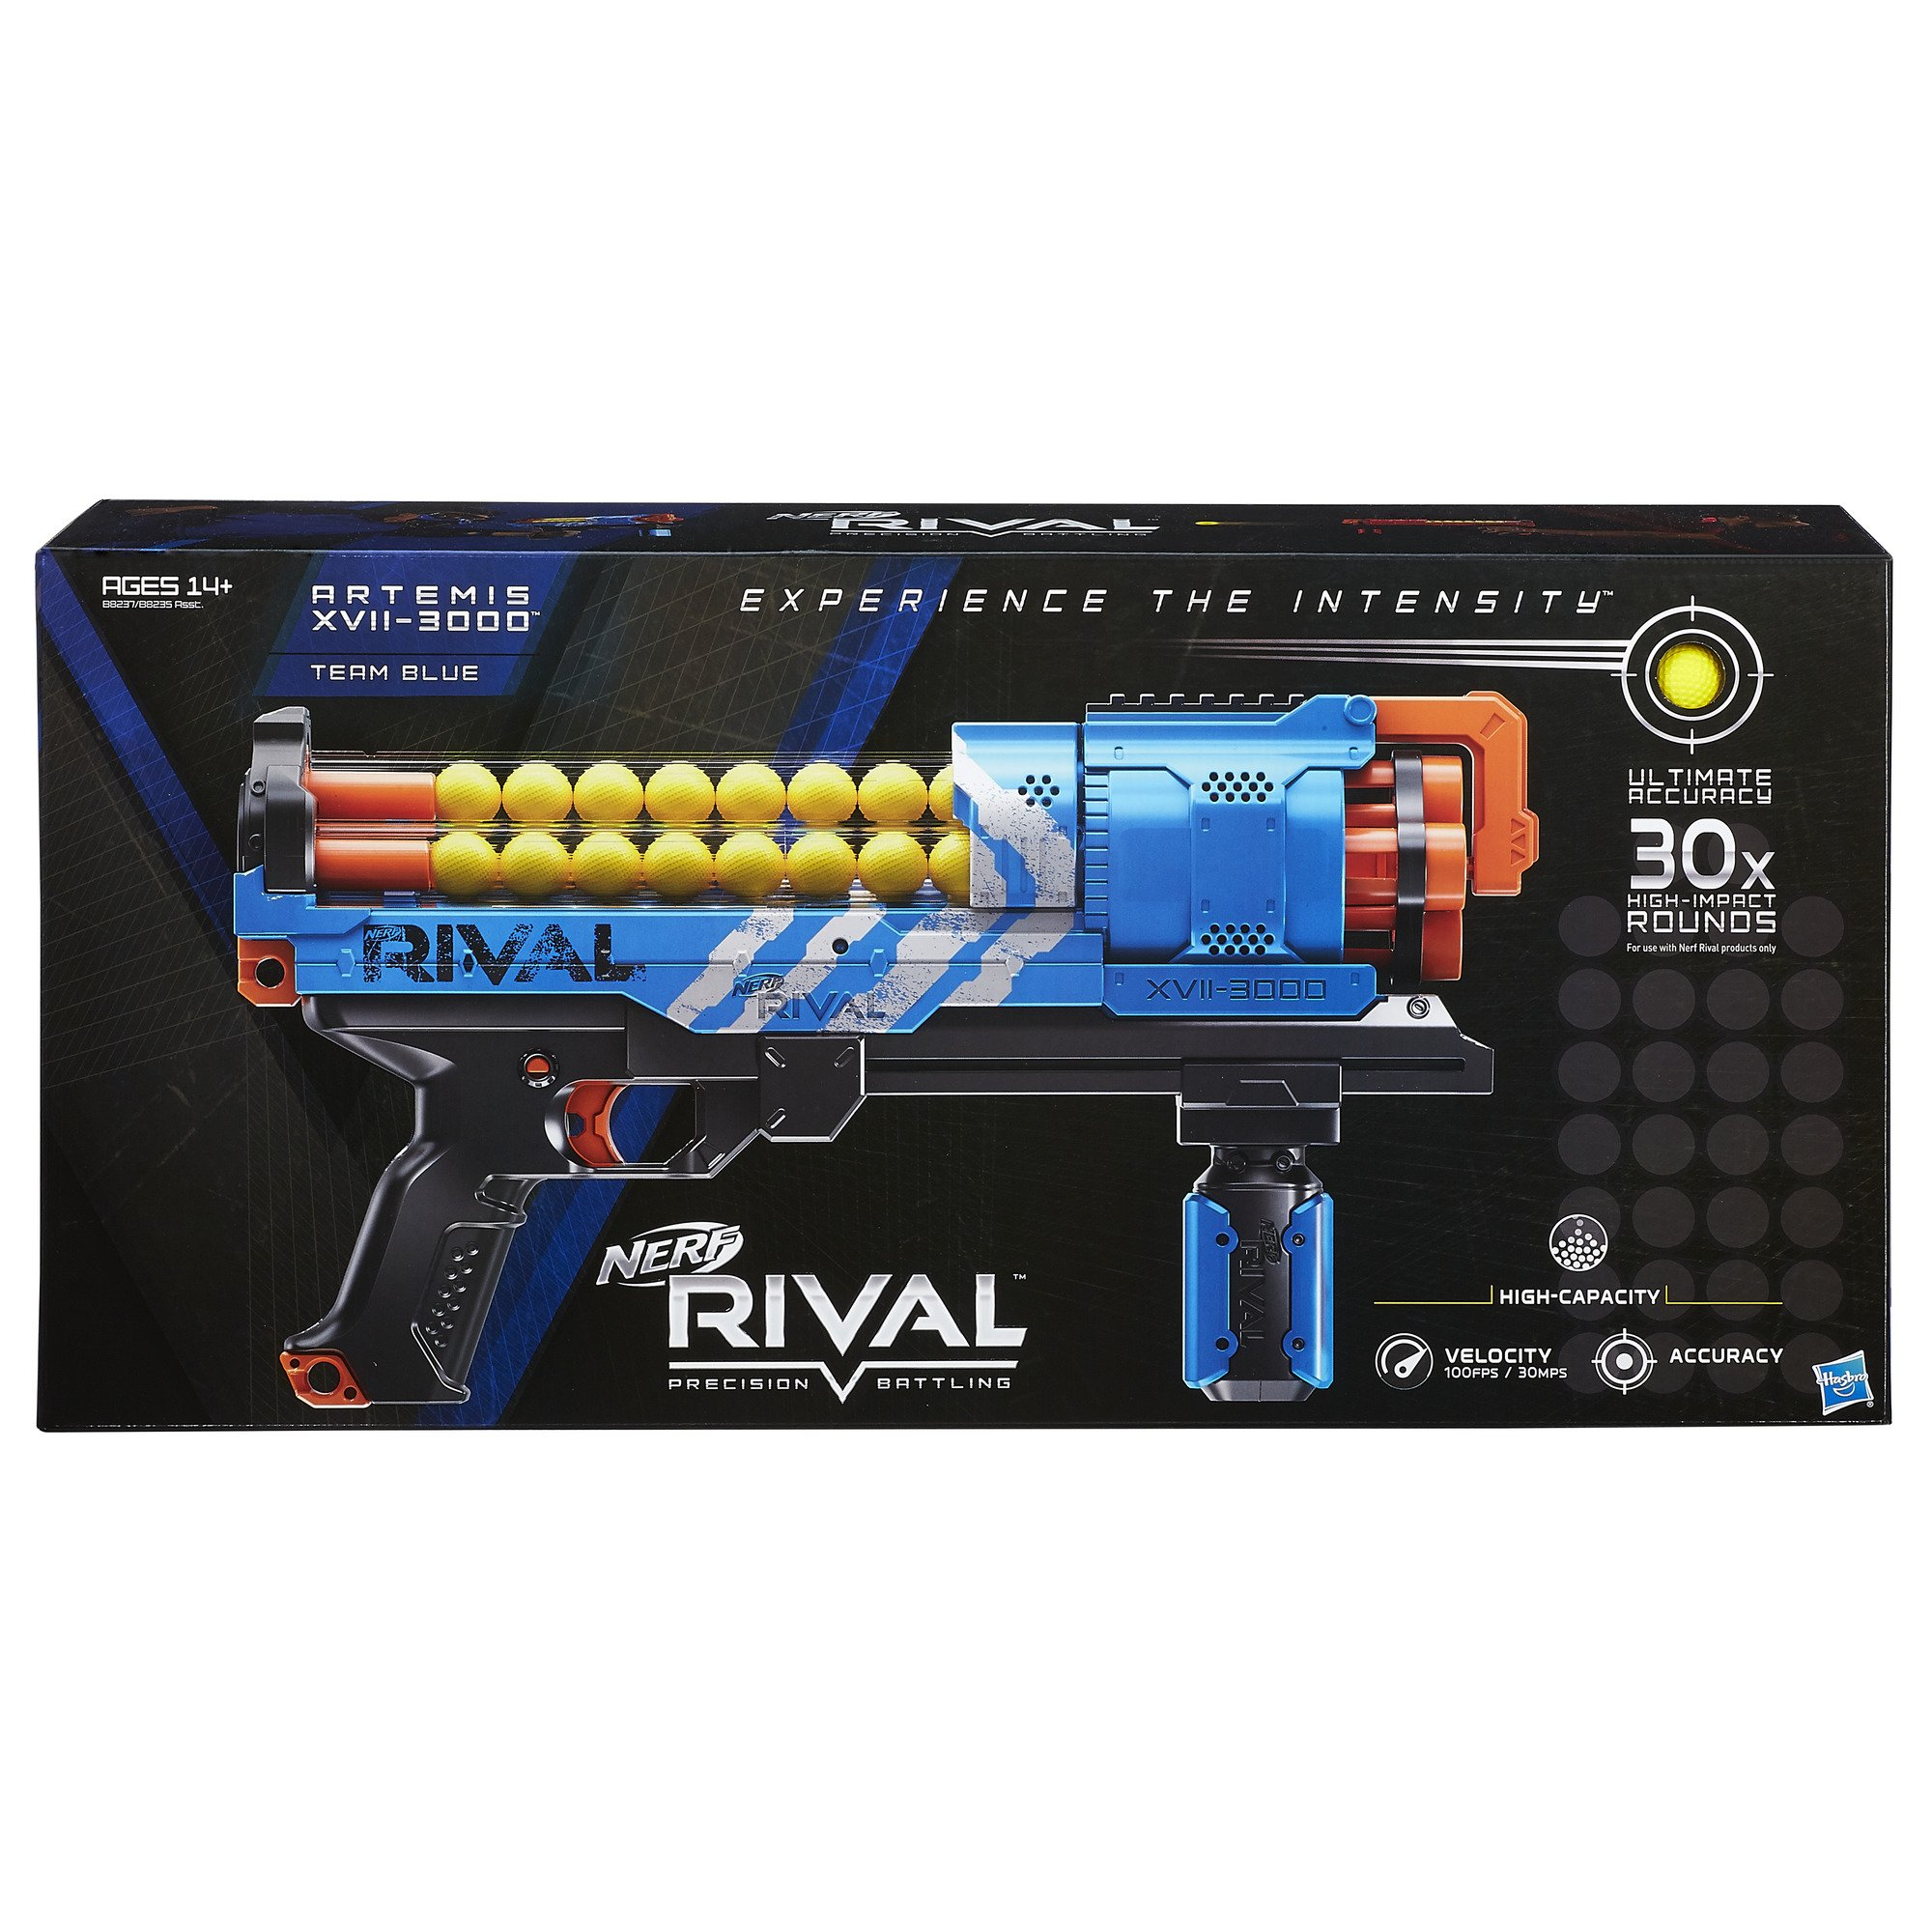 NERF Rival Artemis XVII-3000 Blue by NERF (Image #2)